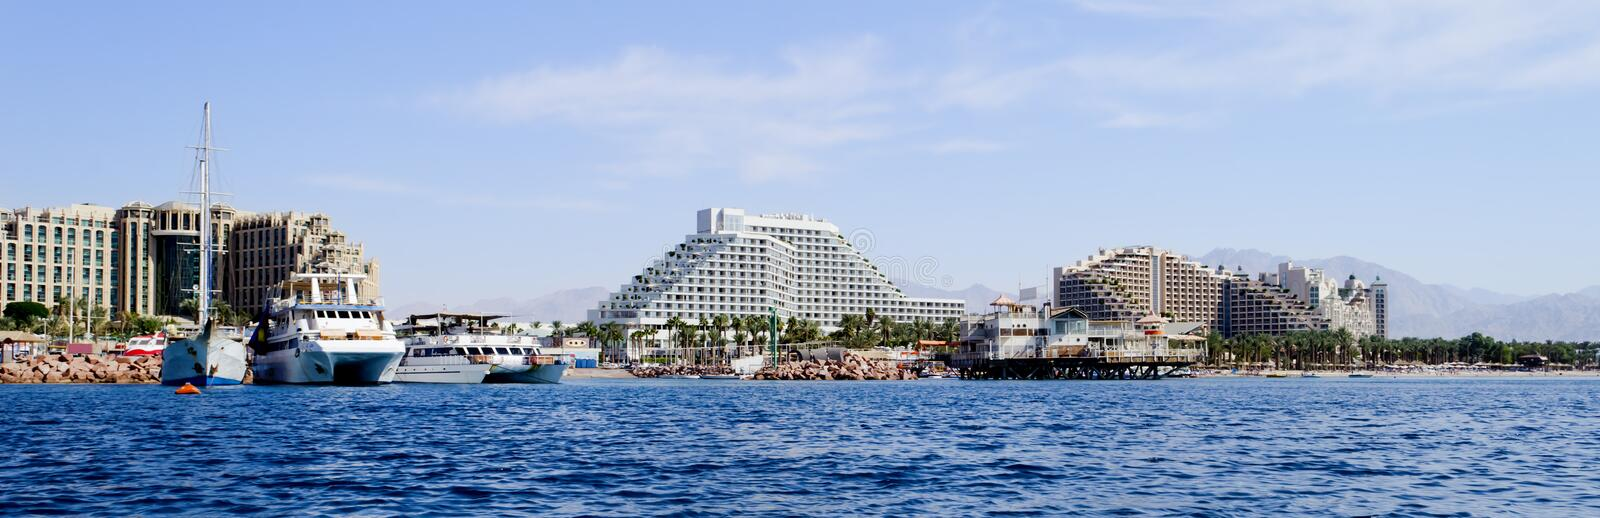 Marina and resort hotels in Eilat, Israel. Eilat is a famous resort and recreation city in Israel located on the Red Sea royalty free stock photo